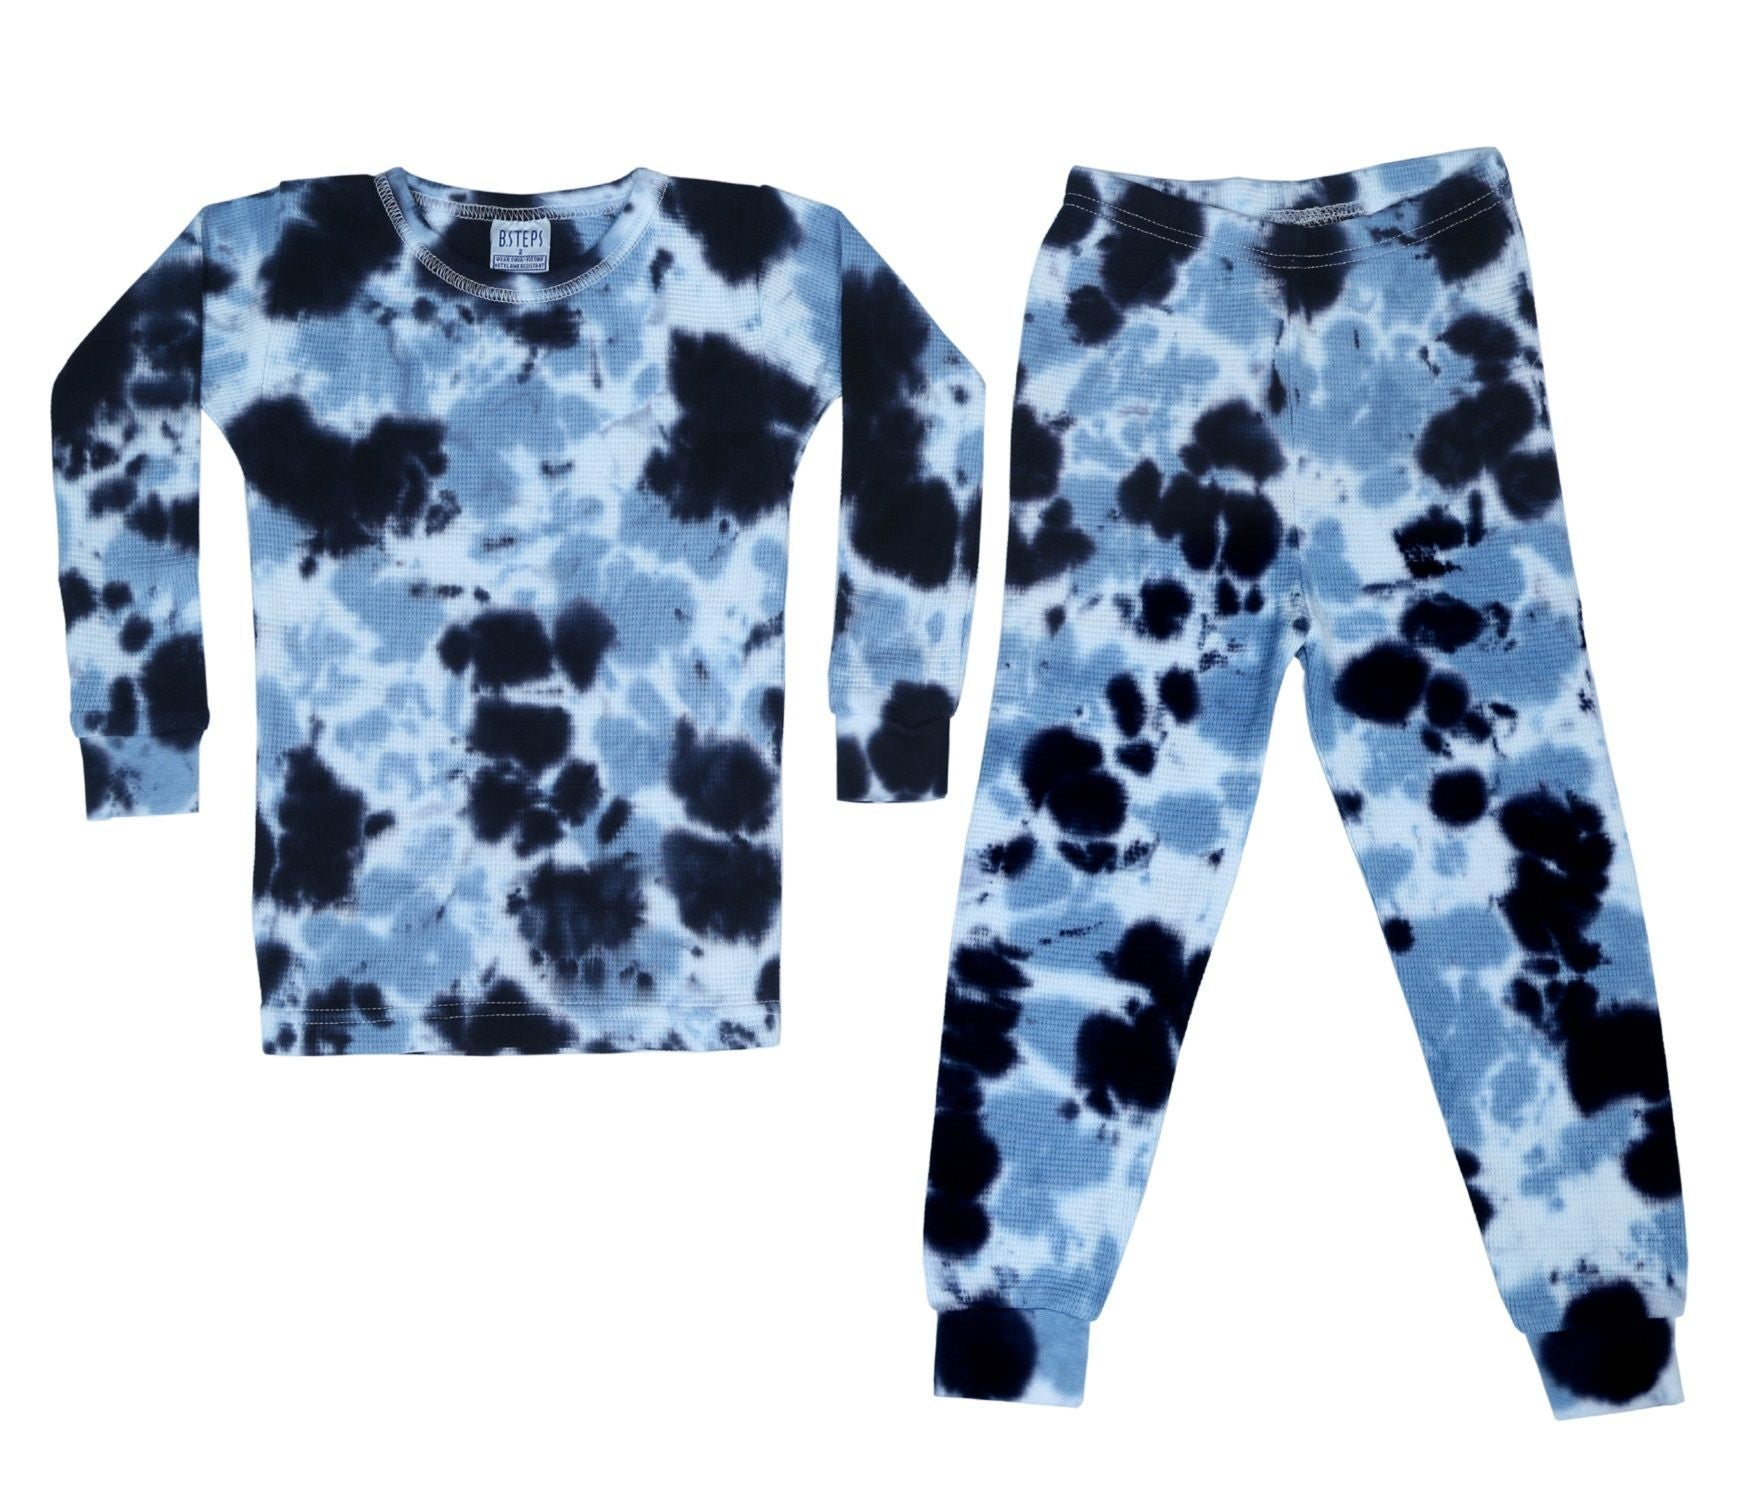 Baby Steps Tie Dye Thermal Pajamas-Assorted Colors